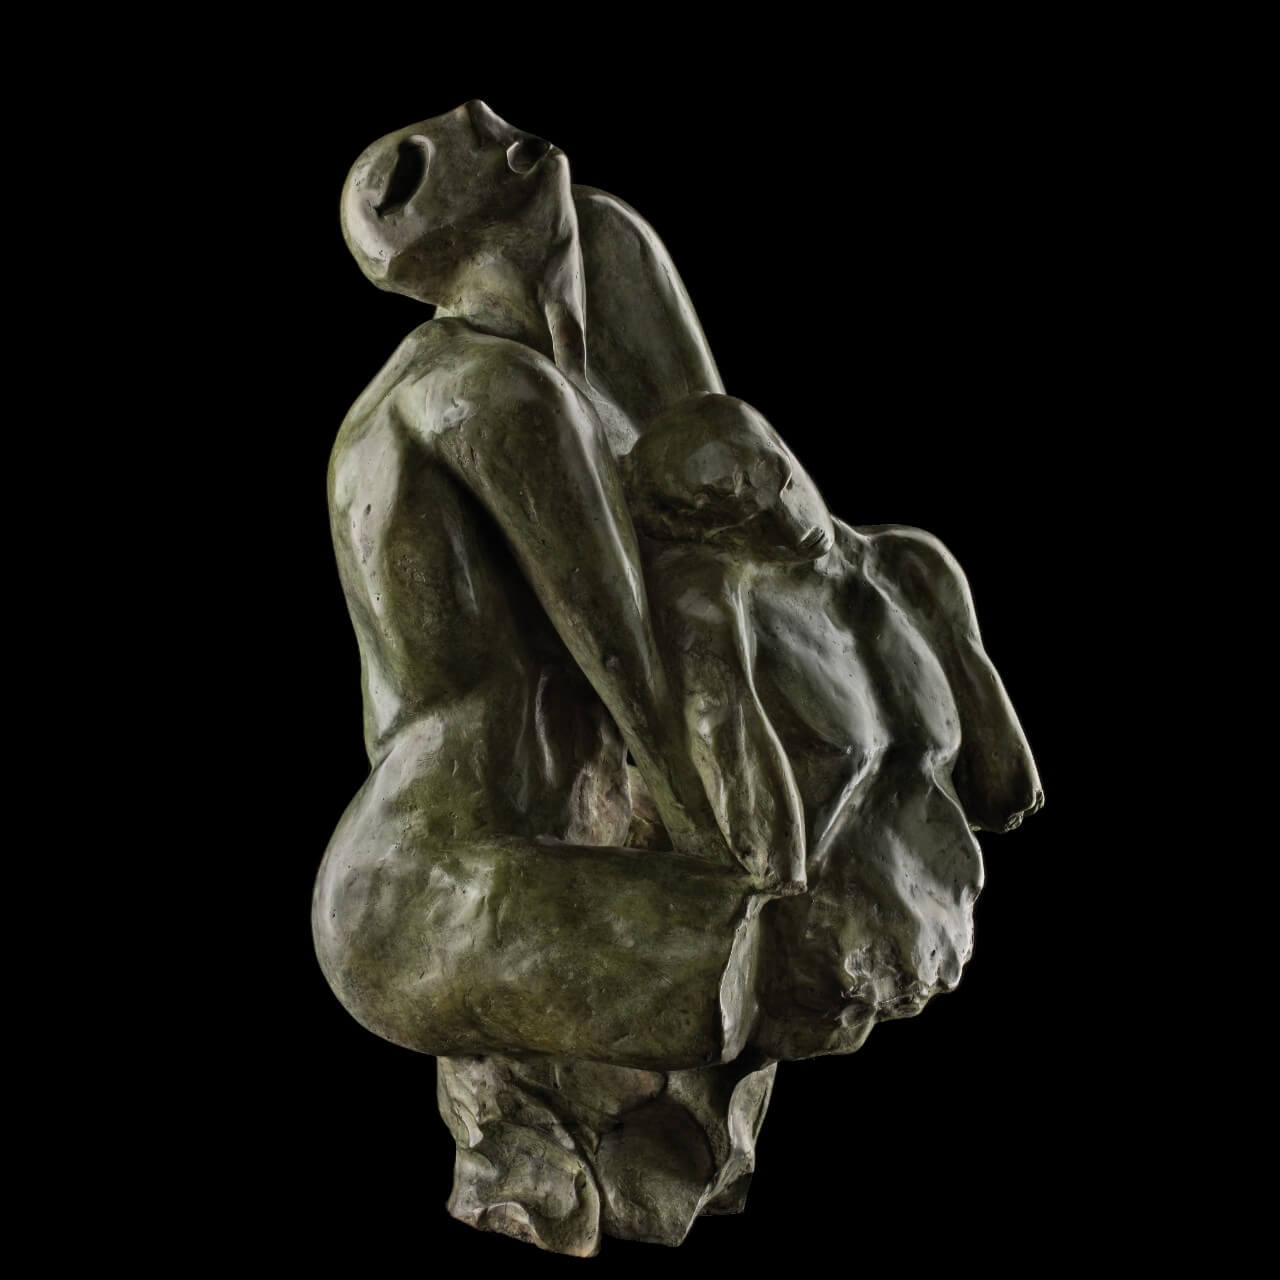 mario pavesi italian sculptur painter bronze female figure maternity